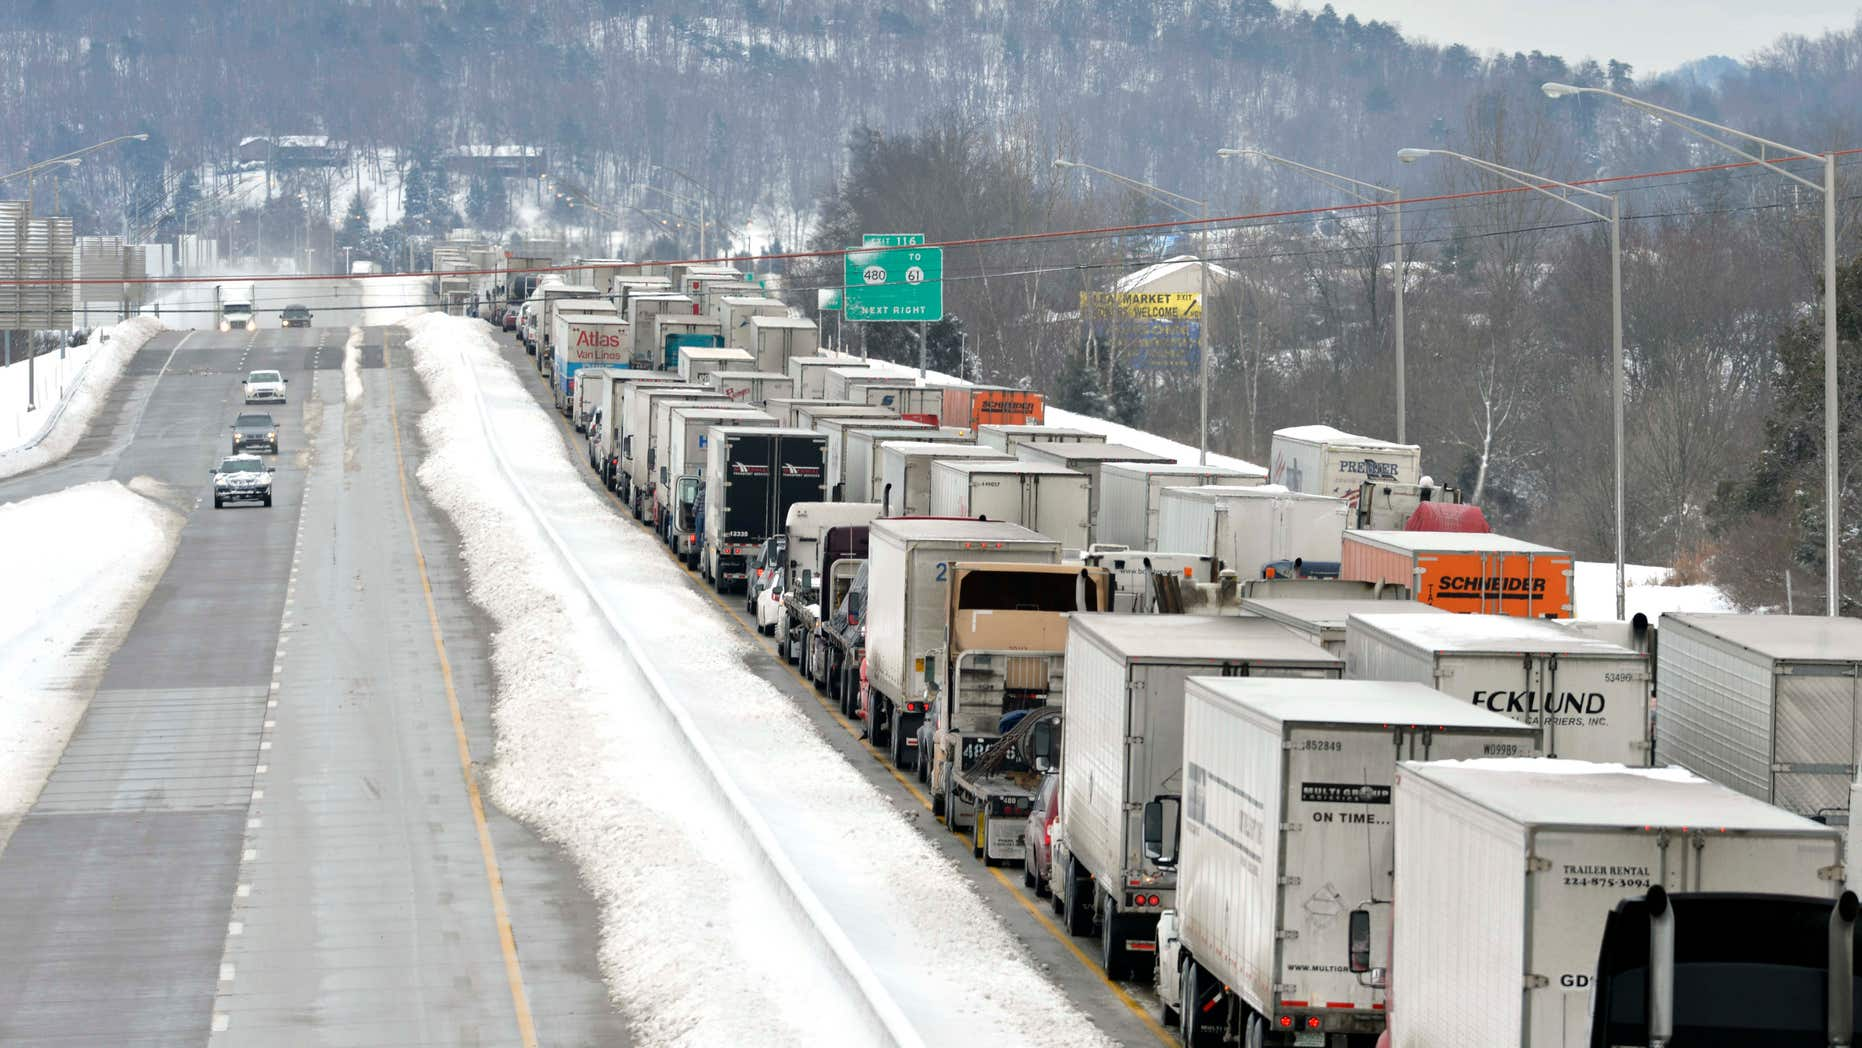 March 5, 2015: Traffic backs up as more than 50 miles of Interstate 65 southbound is shut down from the weather.